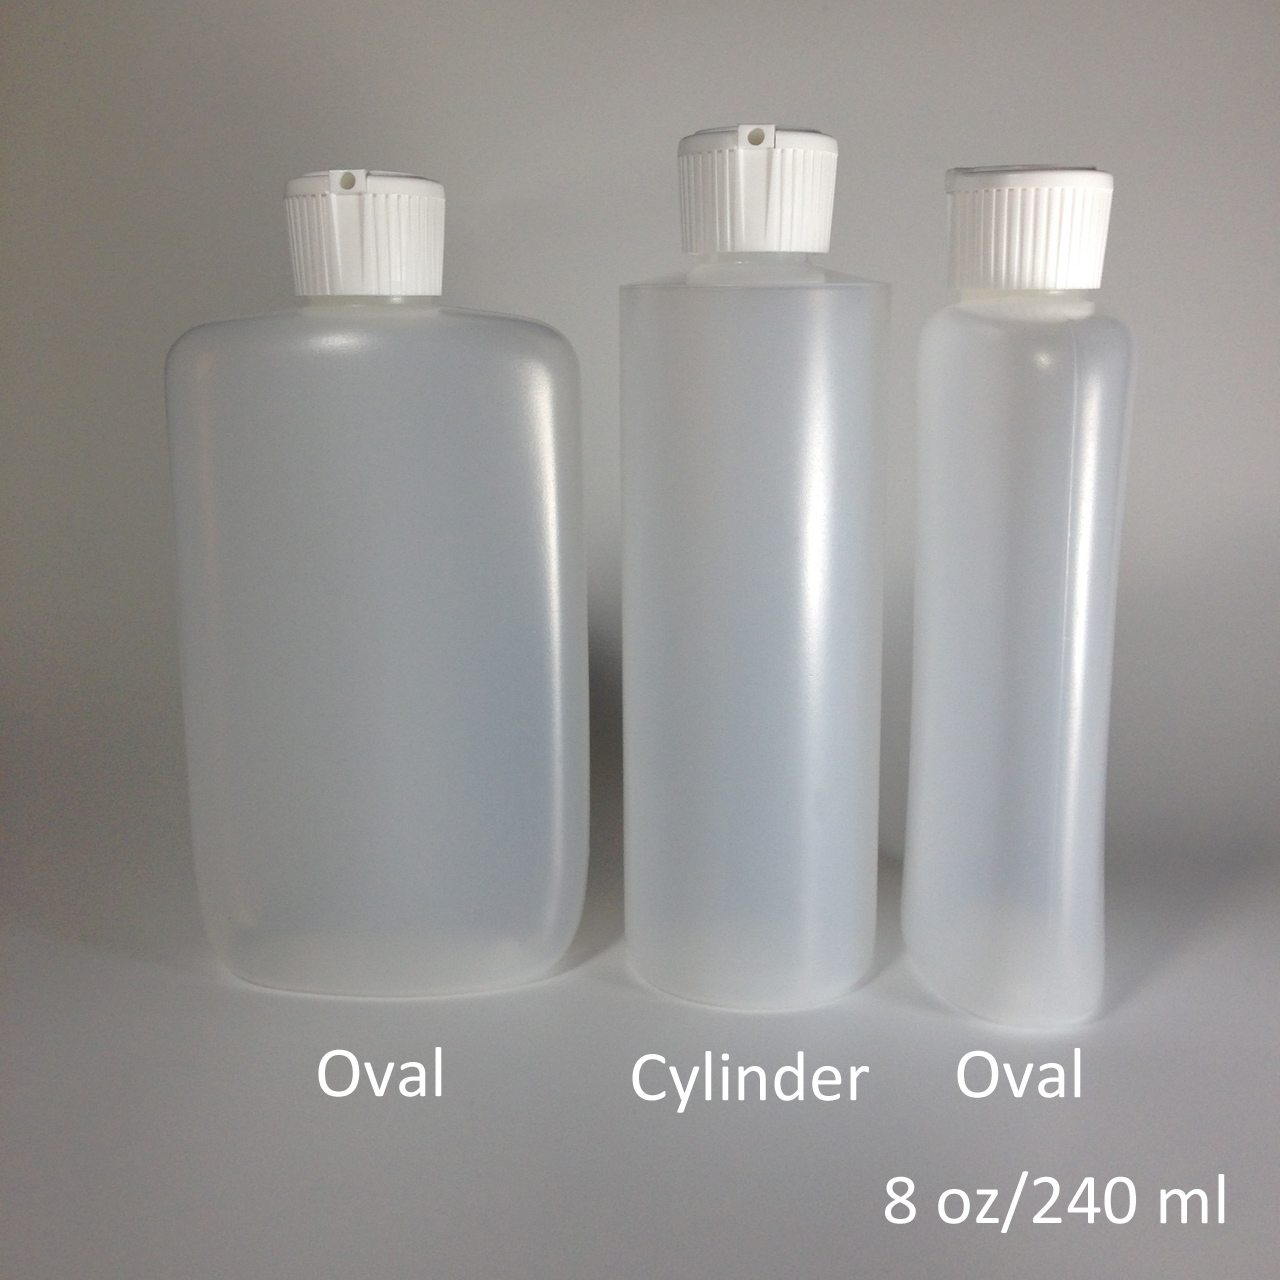 flip-top-oval-vs-cylinder-bottle-8oz.jpg